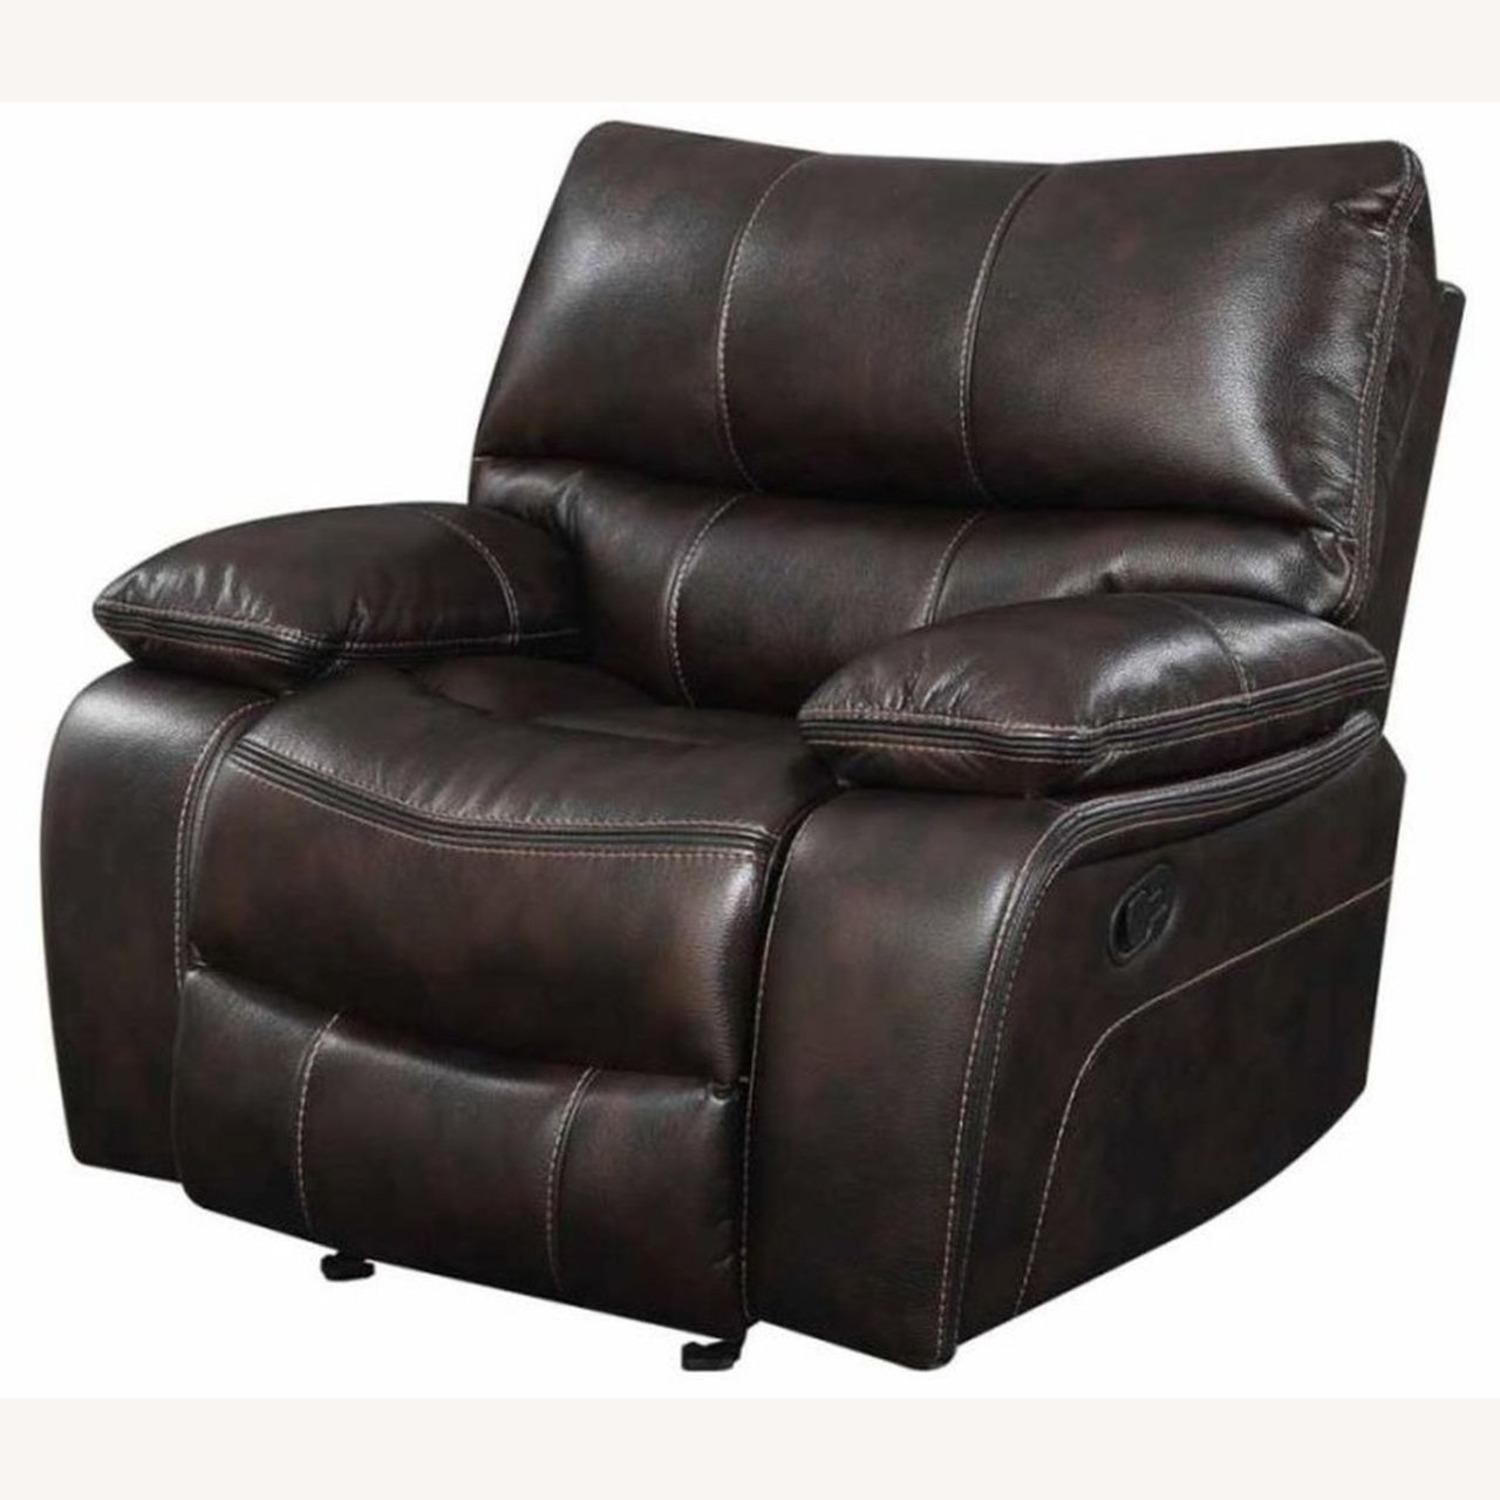 Glider Recliner W/ Scooped Seating In Dark Brown - image-5